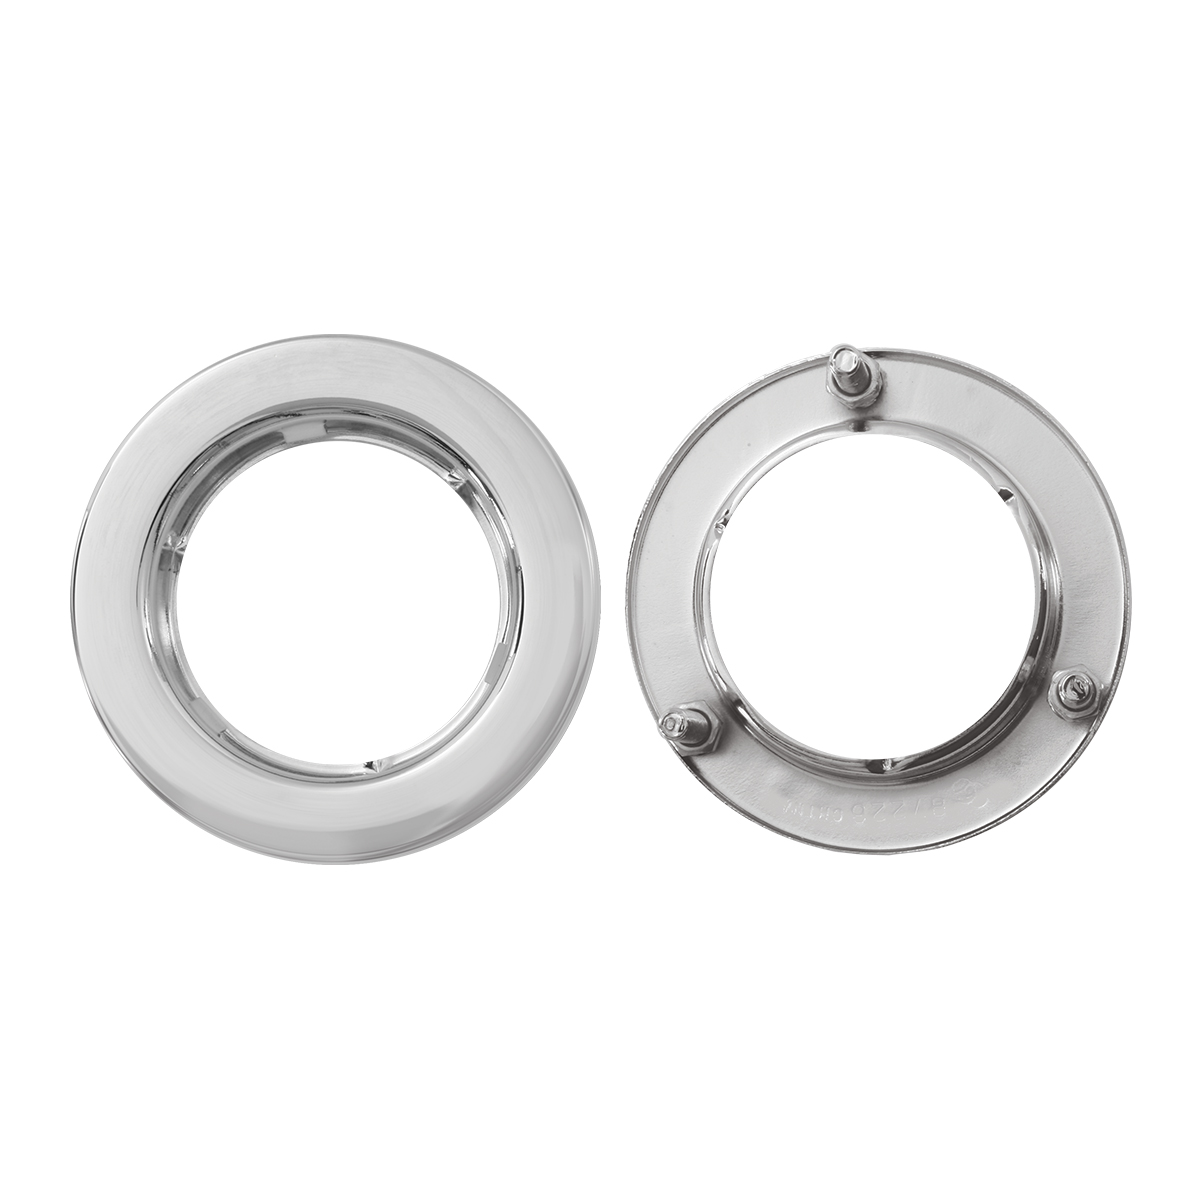 "Front & Back of Flange Mount Bezel with Hidden Studs for 2"" Round Light"